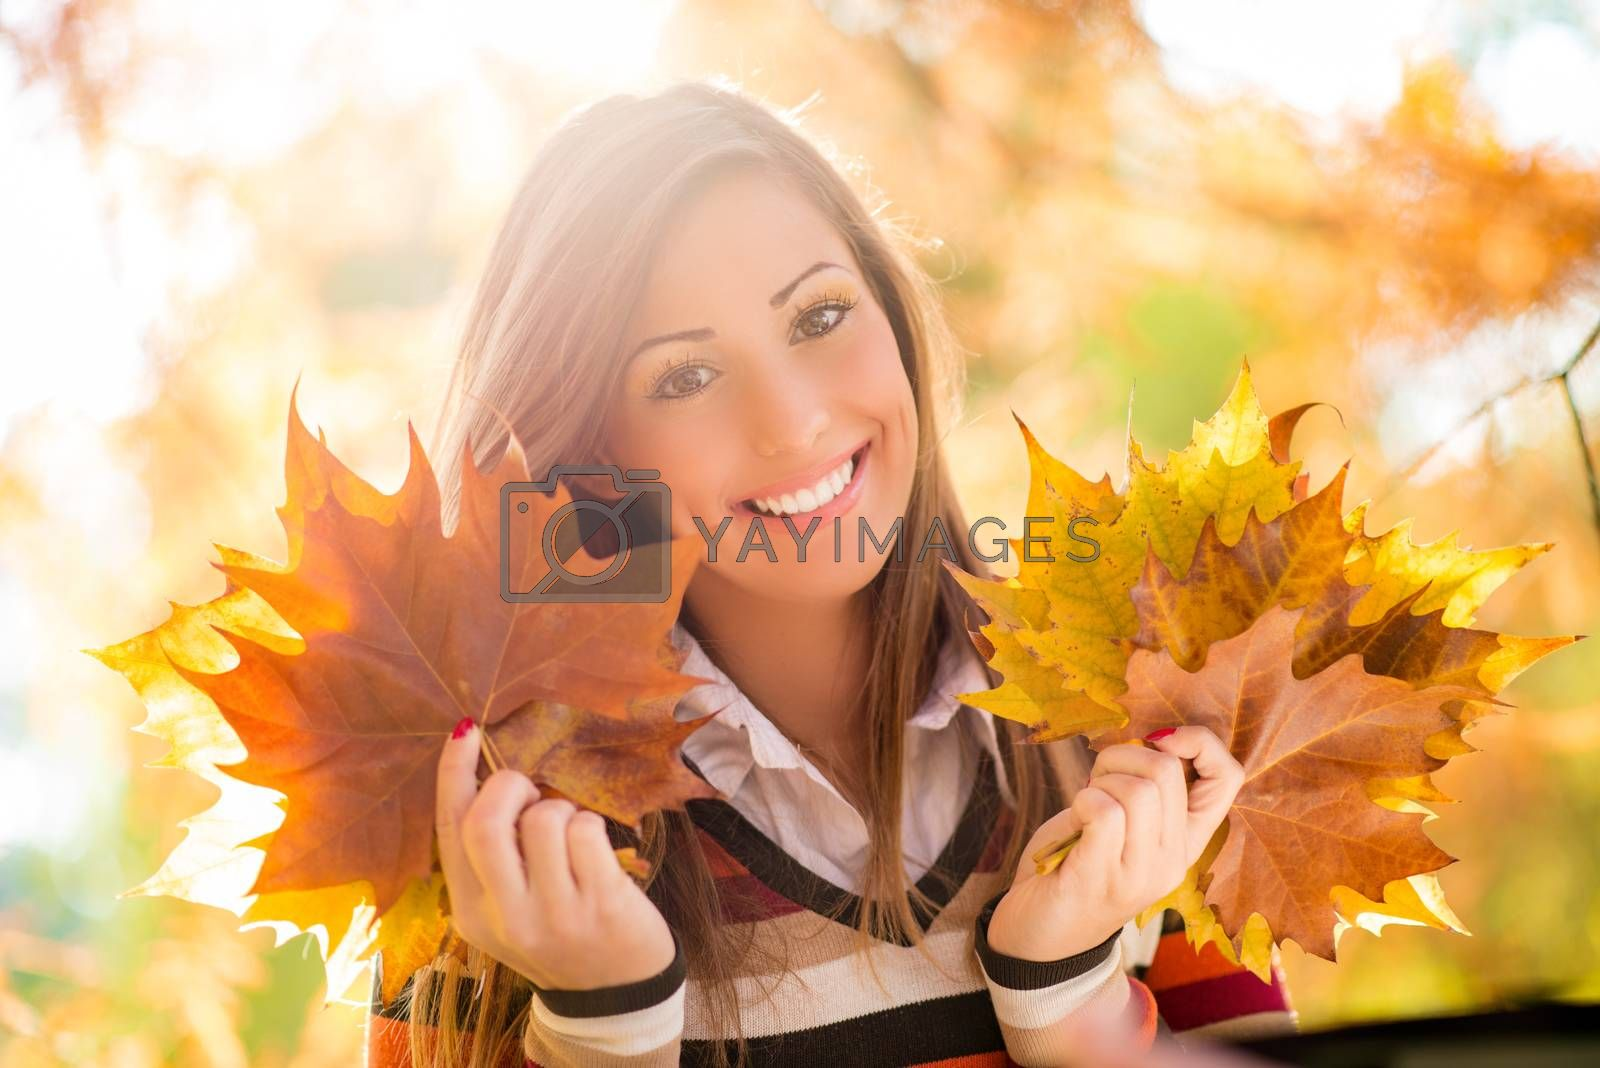 Cute young woman enjoying in sunny forest in autumn colors. She is holding golden yellow leaves. Looking at camera.